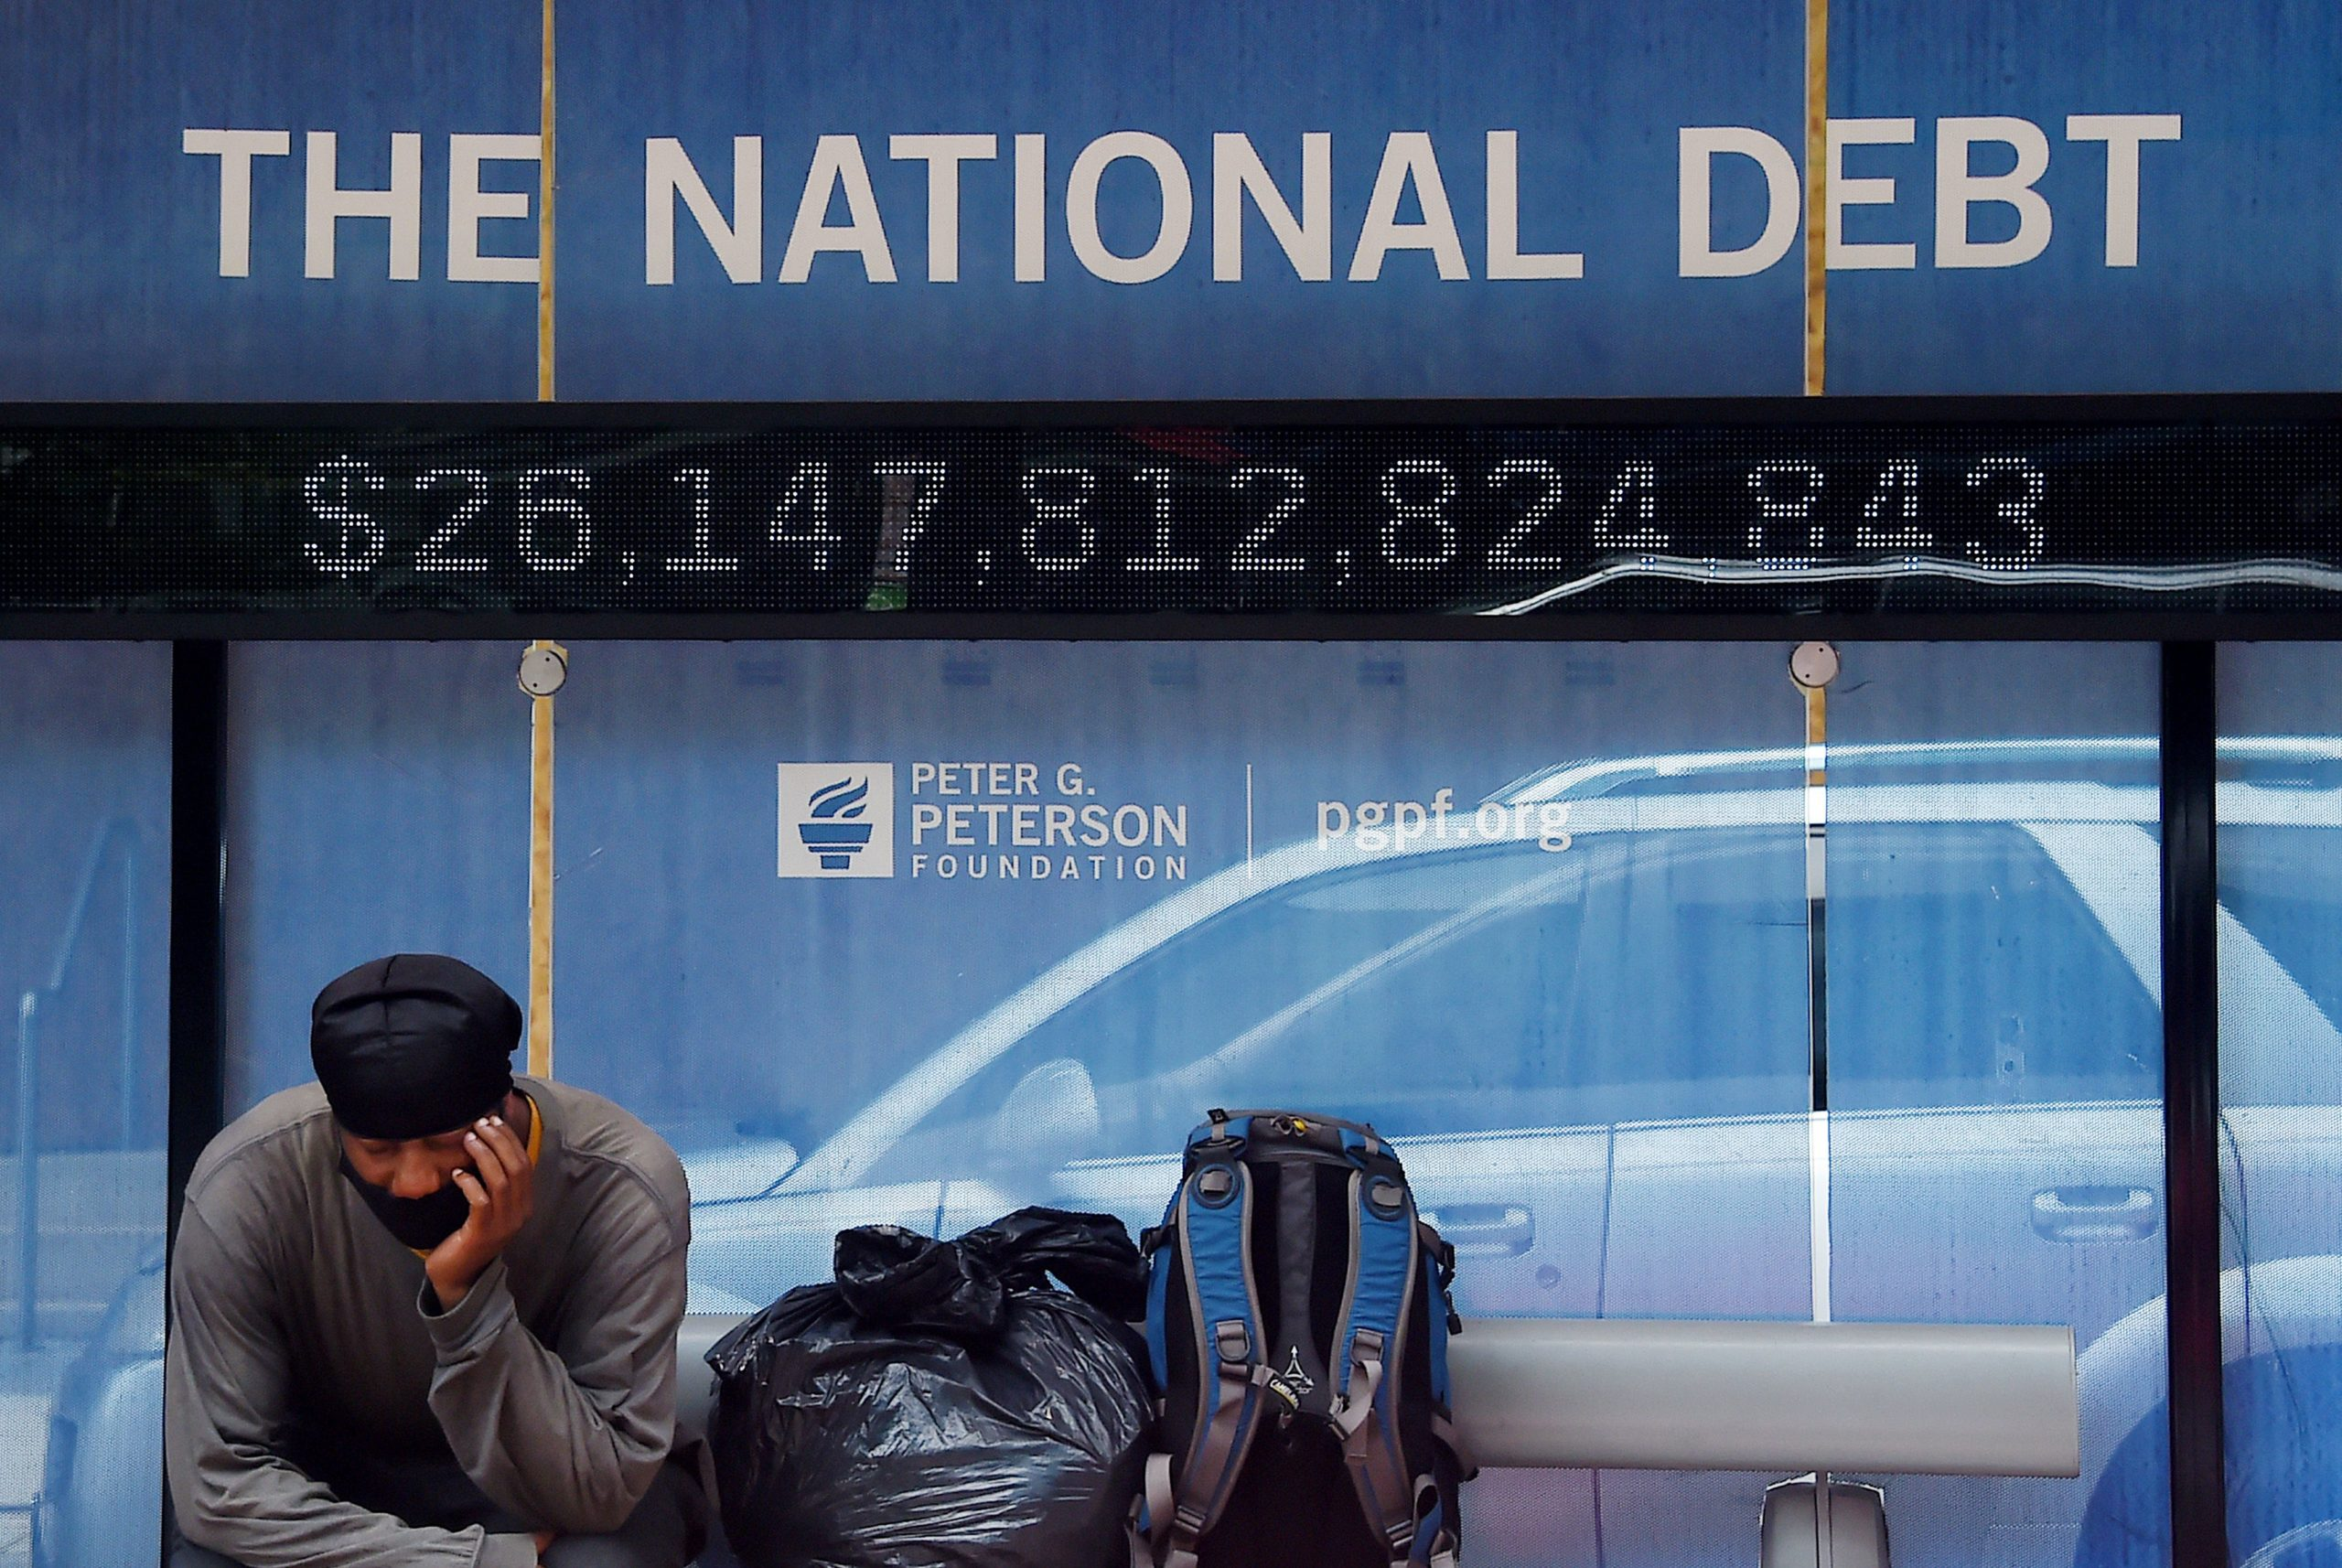 A man waits at a bus stop that displays the national debt of the United States on June 19 in Washington, D.C. (Olivier Douliery/AFP via Getty Images)